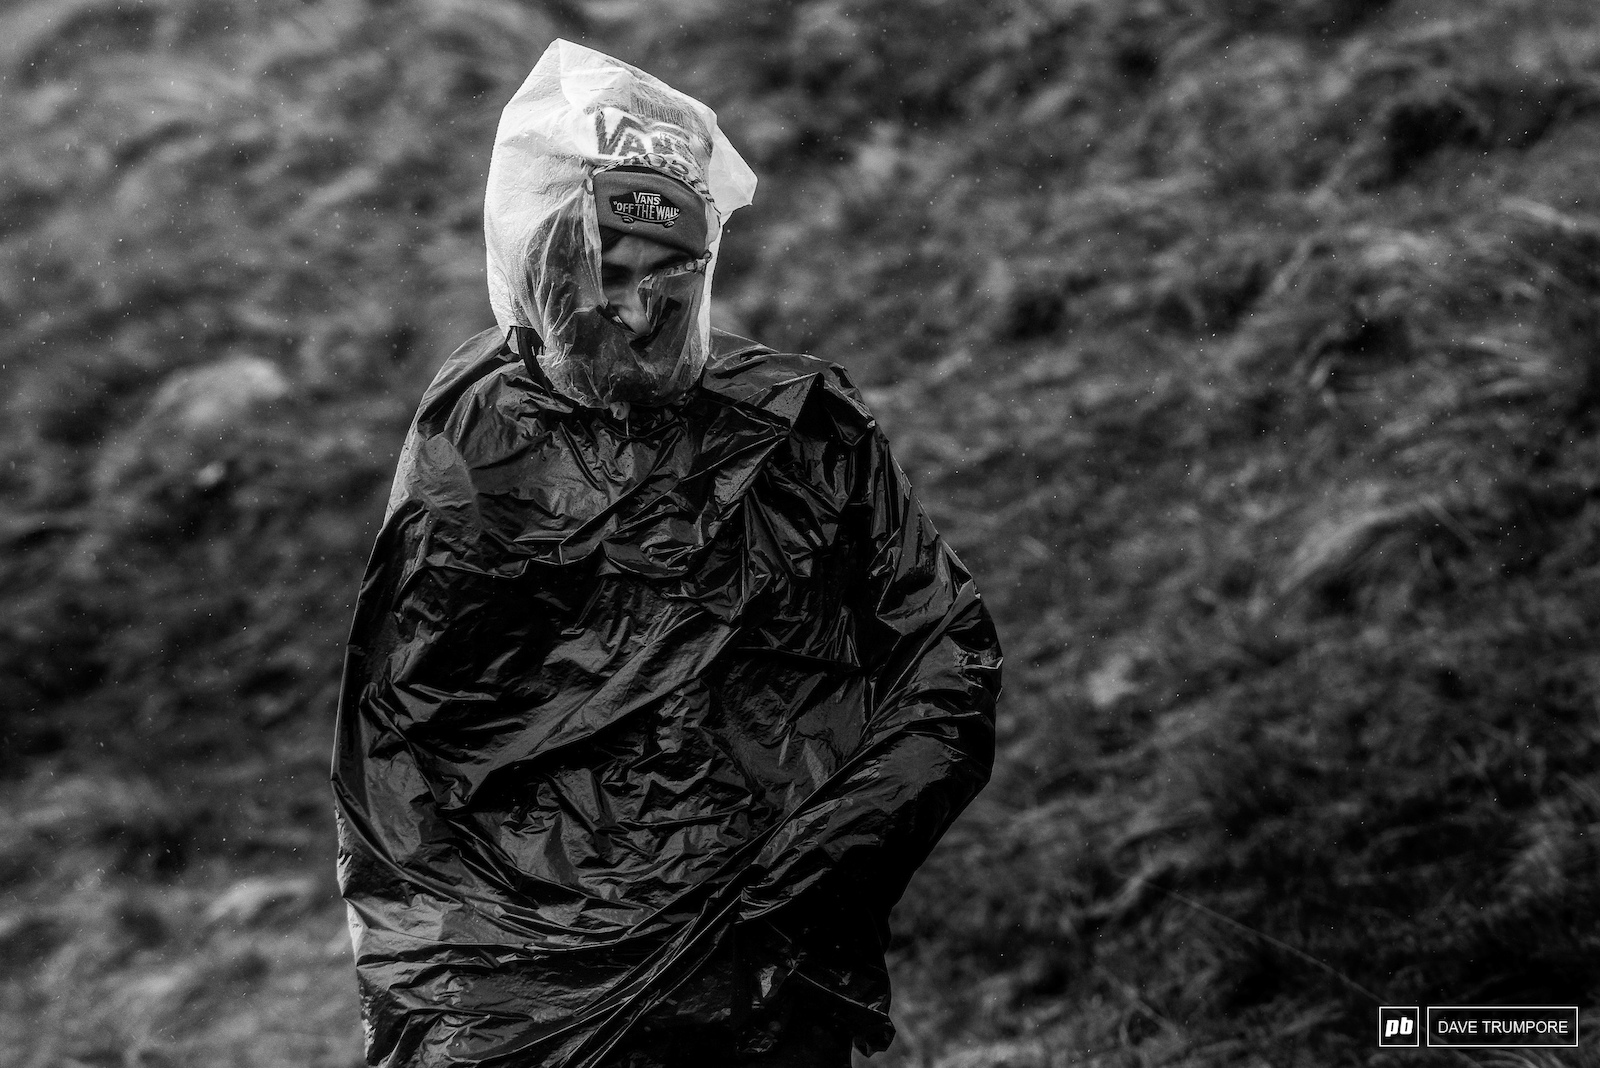 A trash bag kind of day in Fort William. Heavy rain cold temps and stinging wind meant a lot of spectators and media were caught out from not being prepared. Practice was canceled the following day as the weather went from bad to worse - 2015